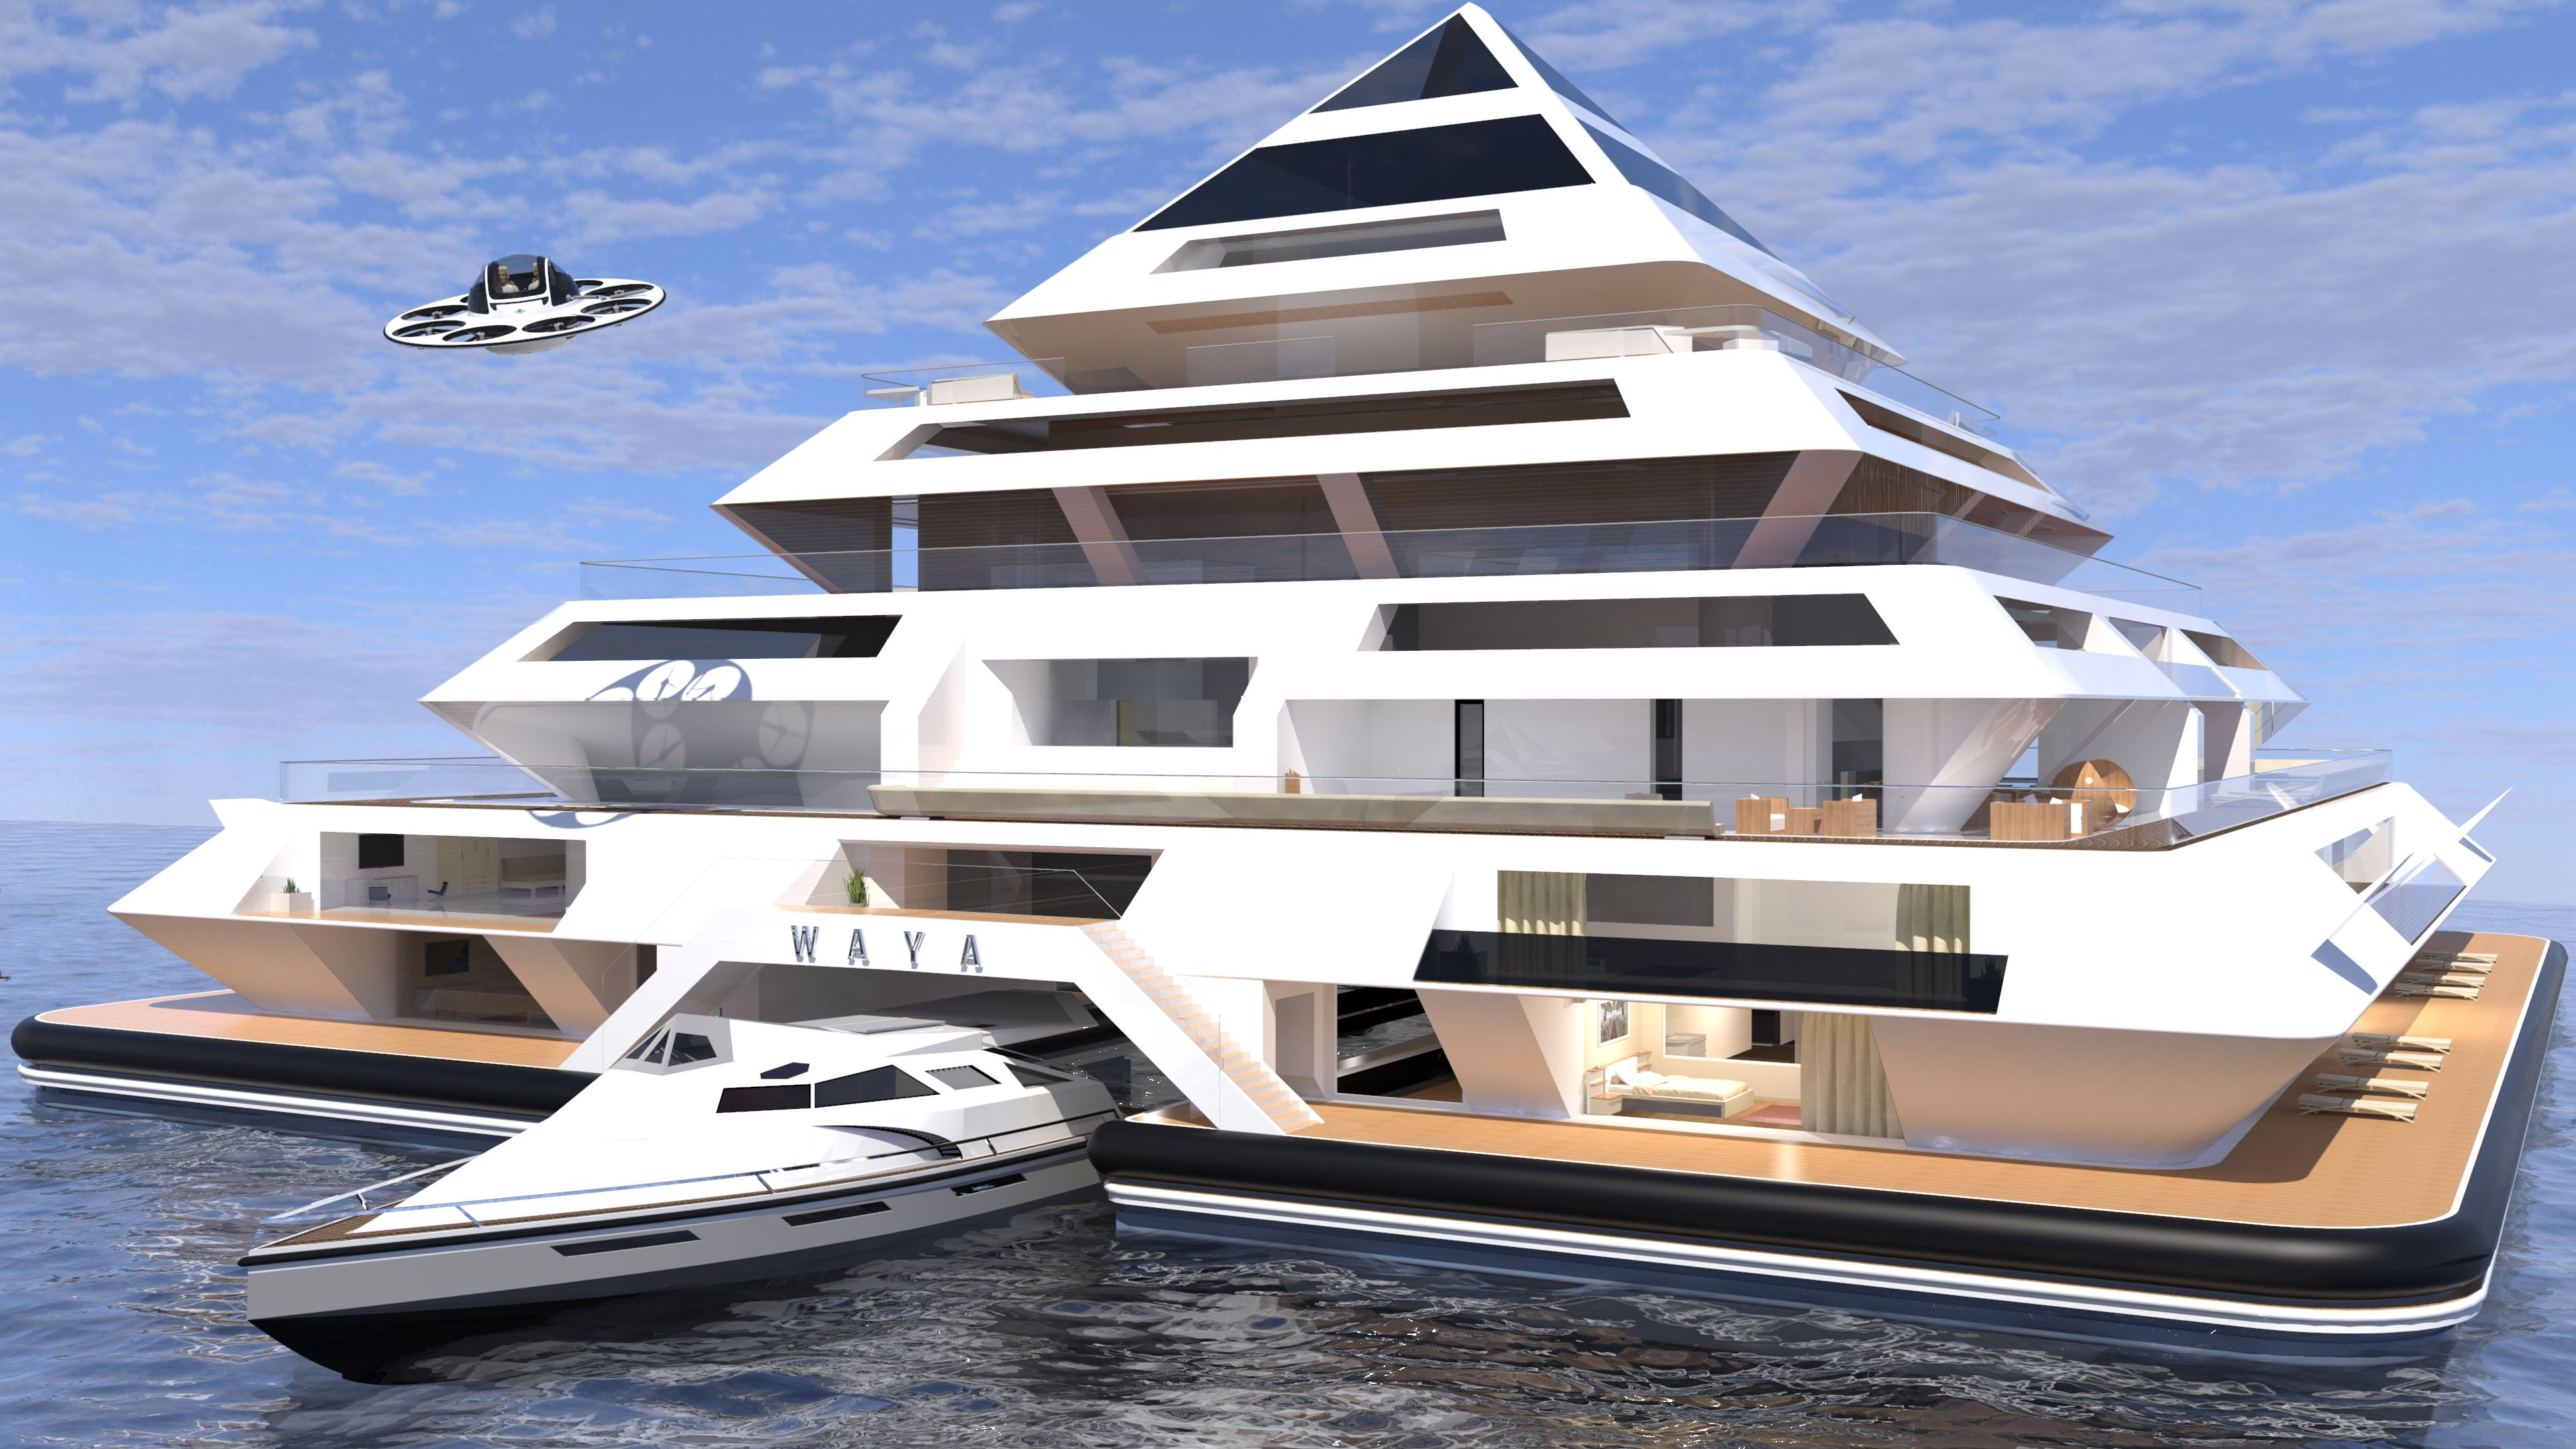 Waya | Your place in the future | Floating architecture ... Future Houseboat Designs on future of boats, future armored vehicles, future navy boats, future space stations, future pontoon boats, future animals, future cruisers, future race boats, future boat design, future speed boats, future architecture concepts, future cargo boats, future boats yachts, future seaplanes, future atv, future technology, future townhouses, future power boats, future homes,